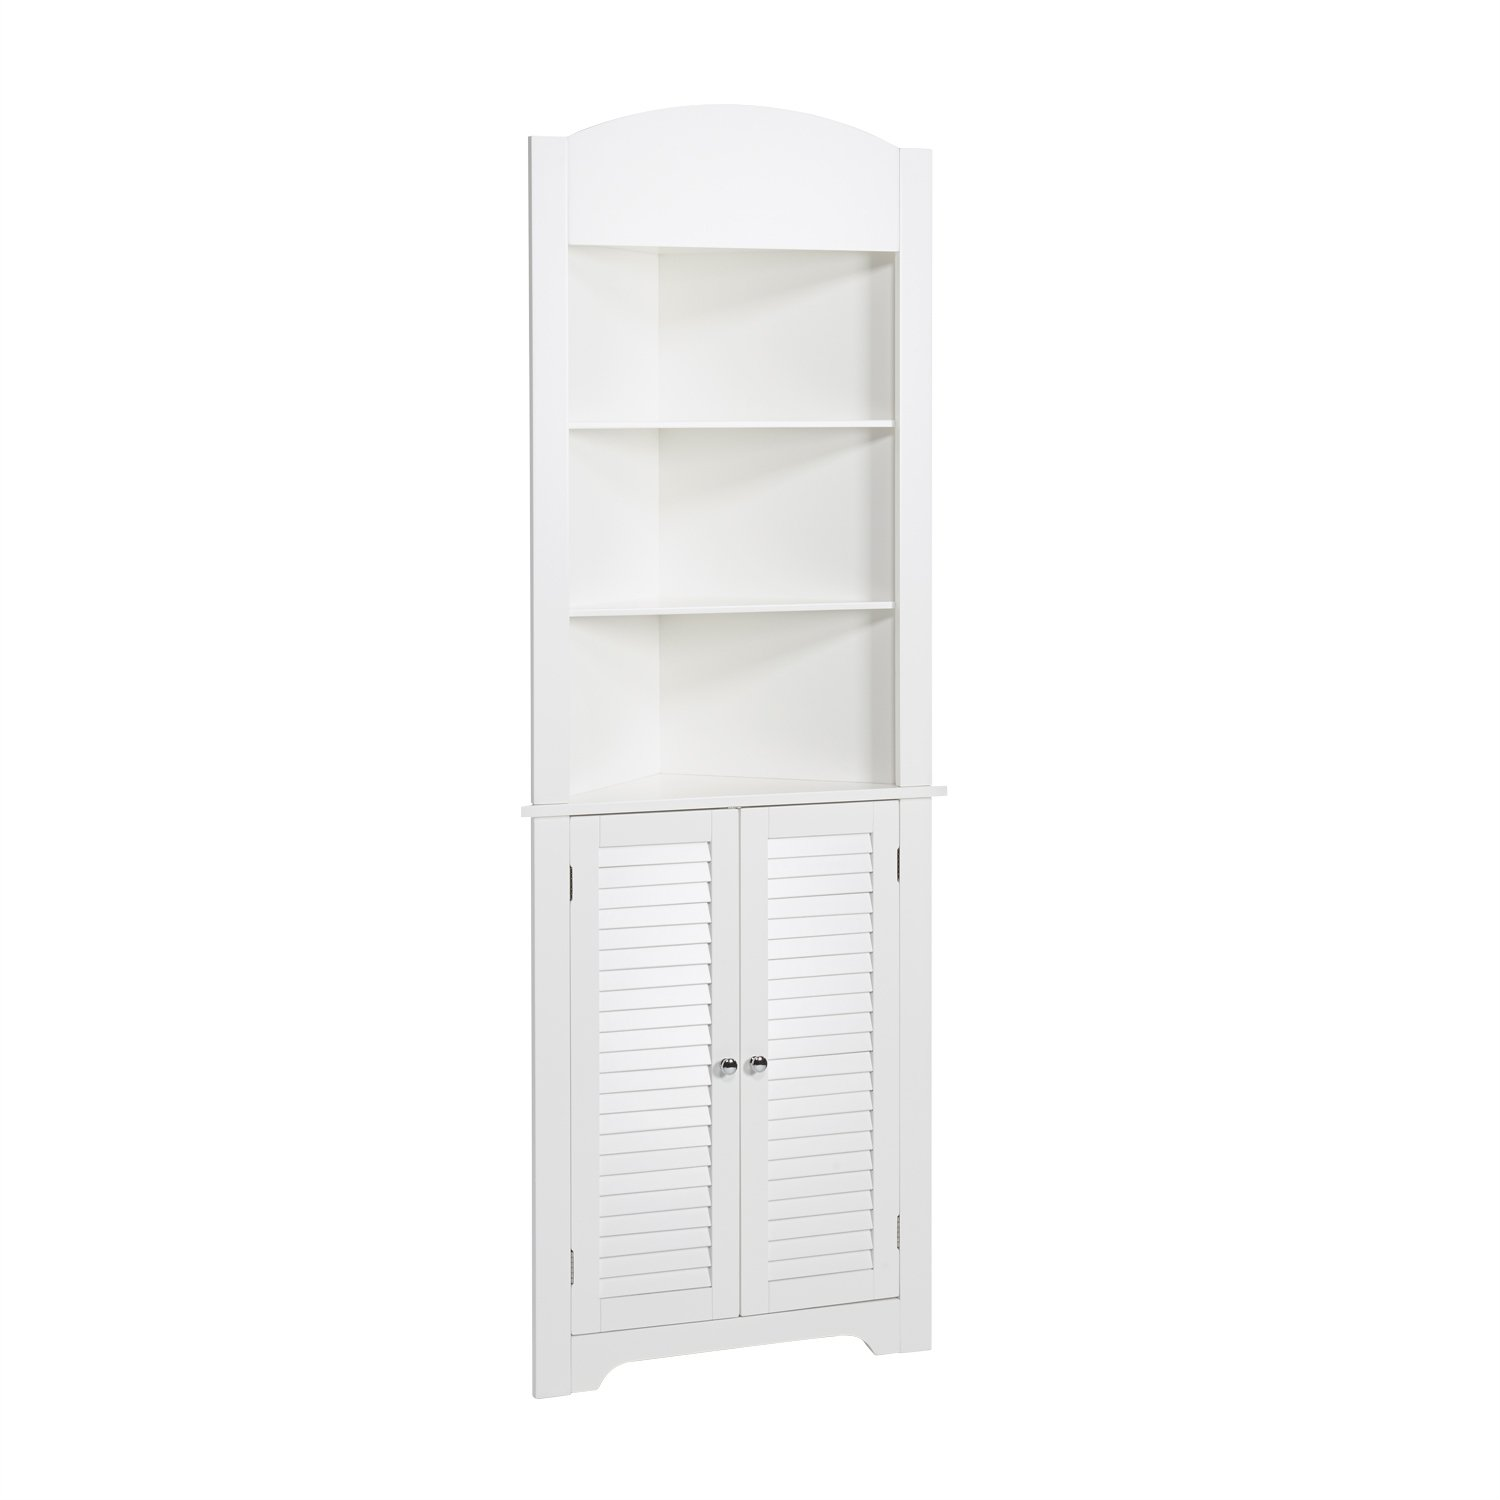 RiverRidge Ellsworth Collection Tall Corner Cabinet, White